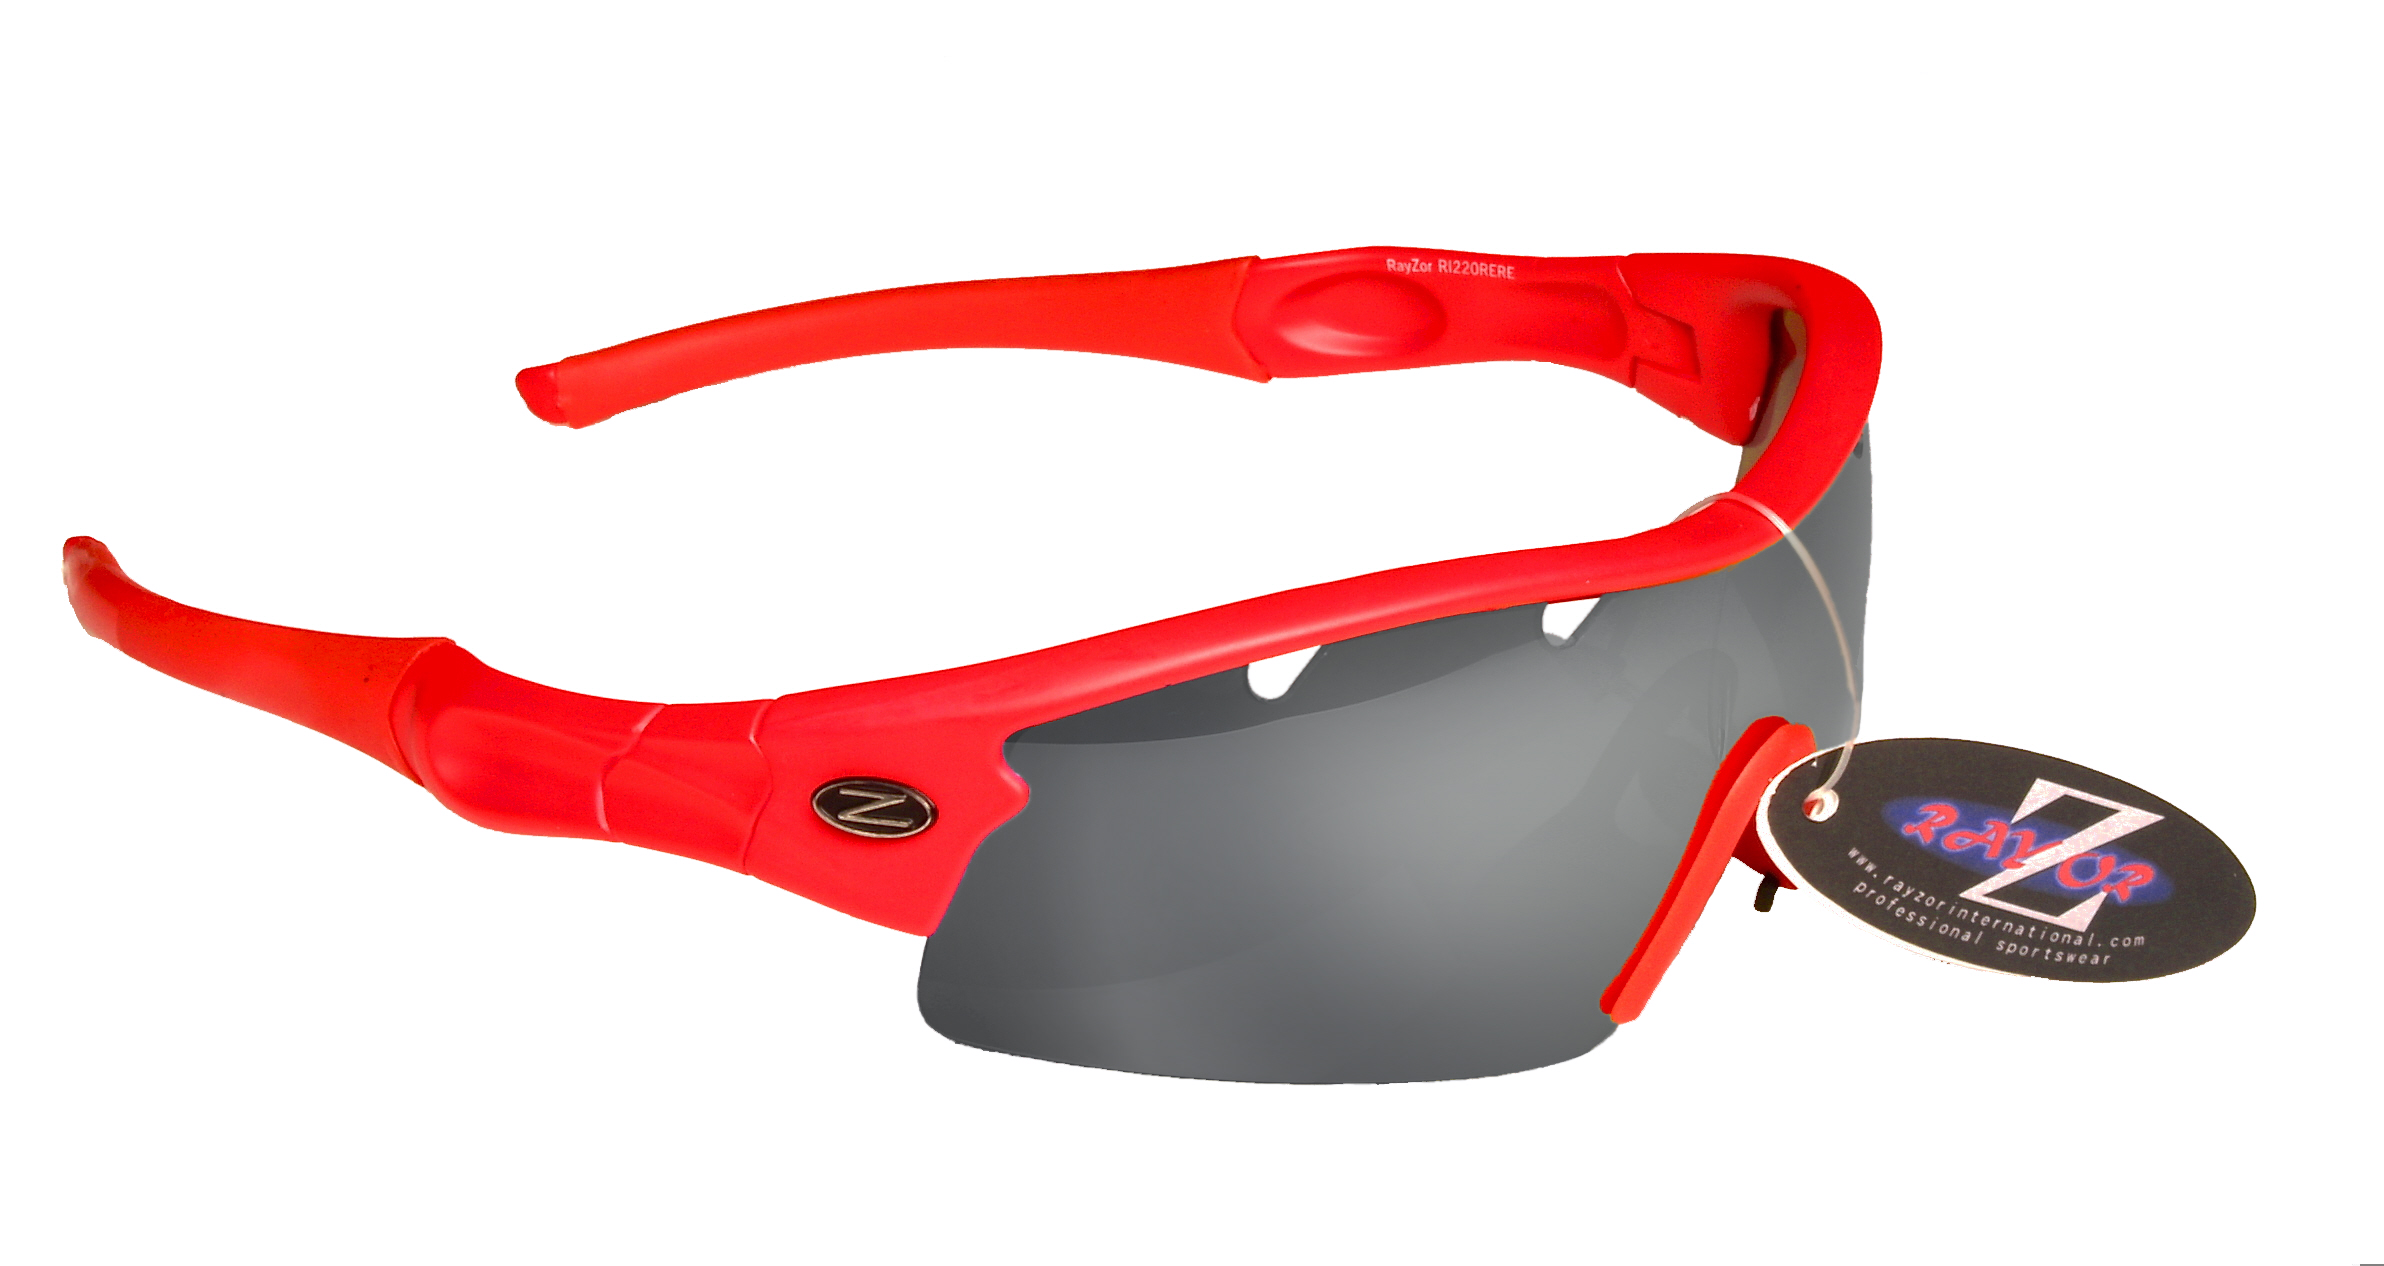 RED FRAMED SUNGLASSES WITH A 1 PIECE VENTED SMOKE MIRRORED LENS.